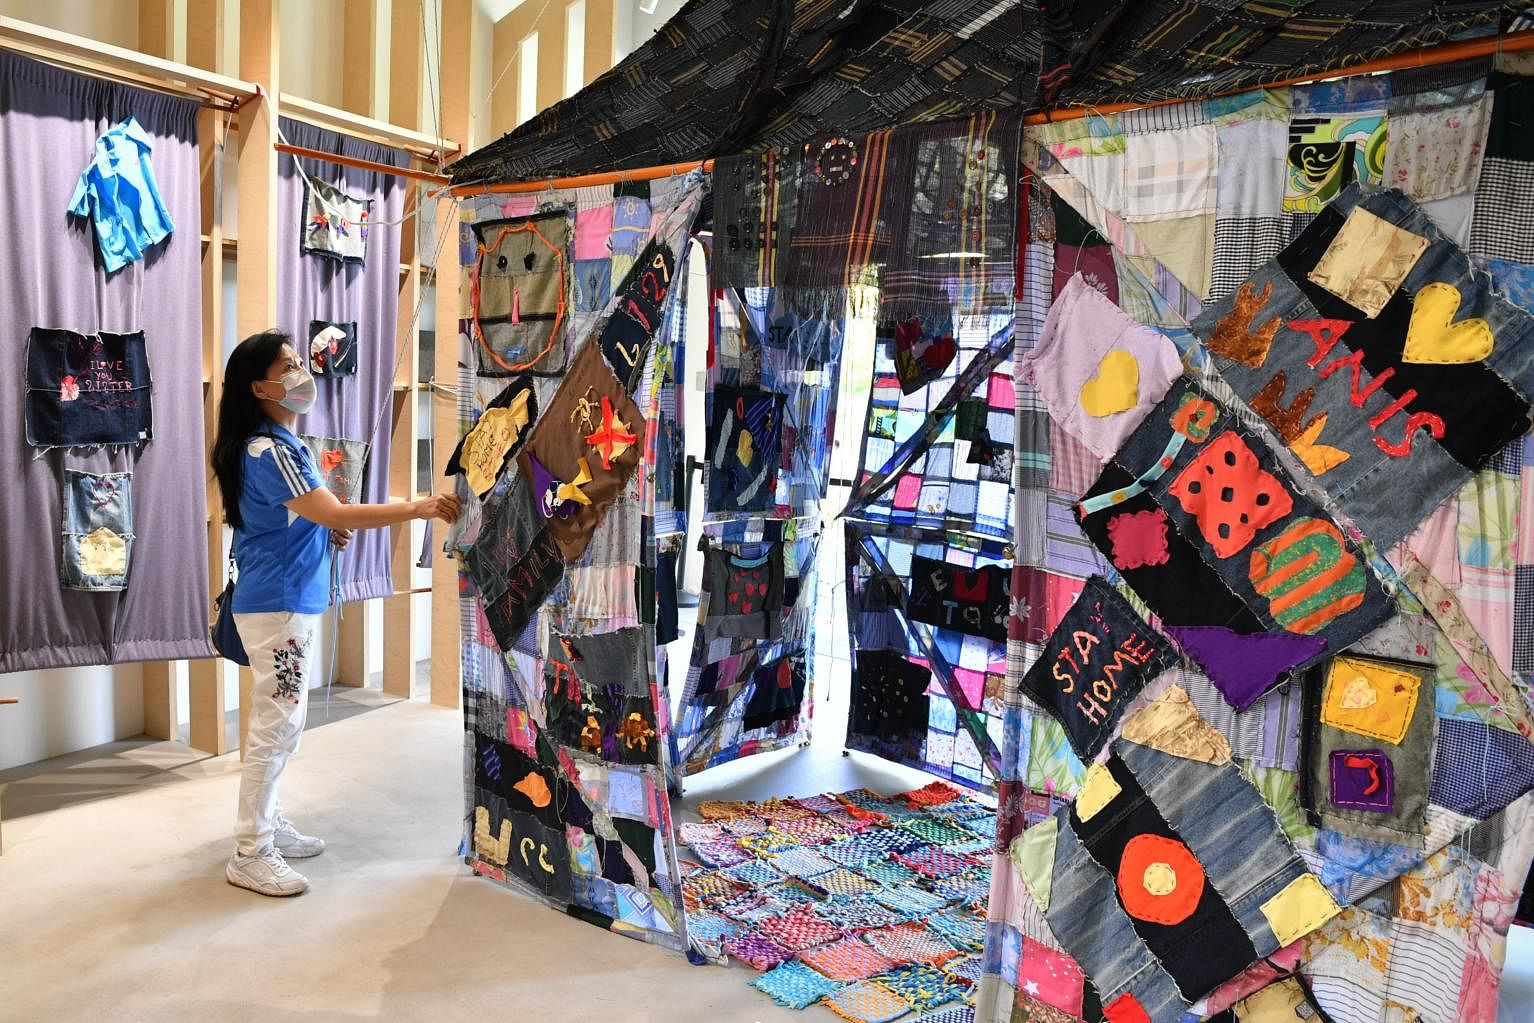 A visitor looking at the Stay Home Quilt at the Tzu Chi Humanistic Youth Centre on Dec 27, 2020. ST PHOTO: CHONG JUN LIANG